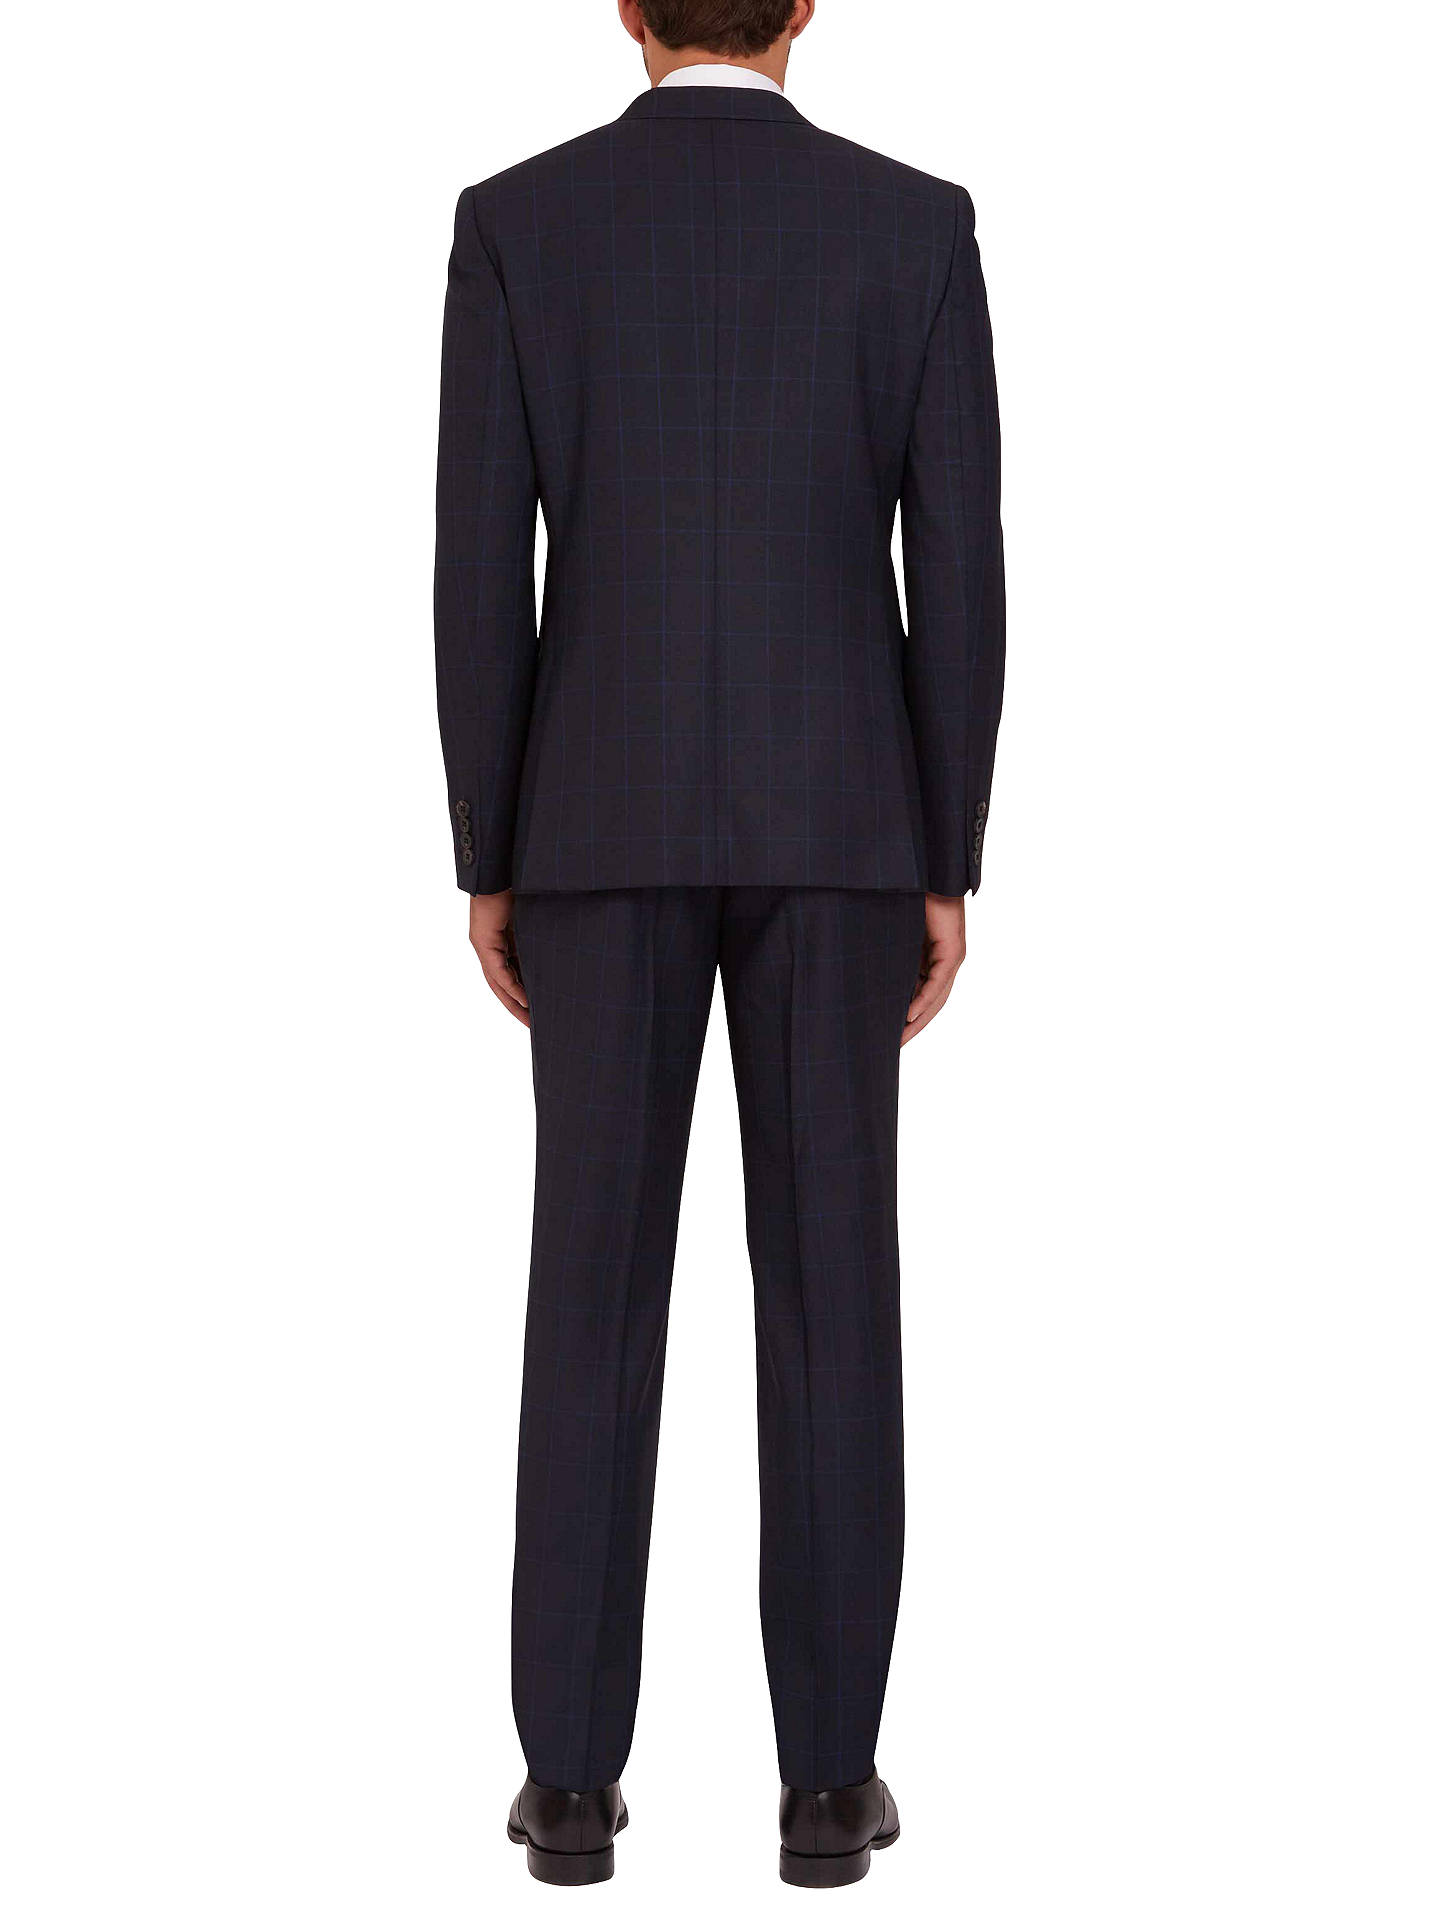 BuyJaeger Wool Birdseye Windowpane Check Suit Jacket, Navy, 36R Online at johnlewis.com